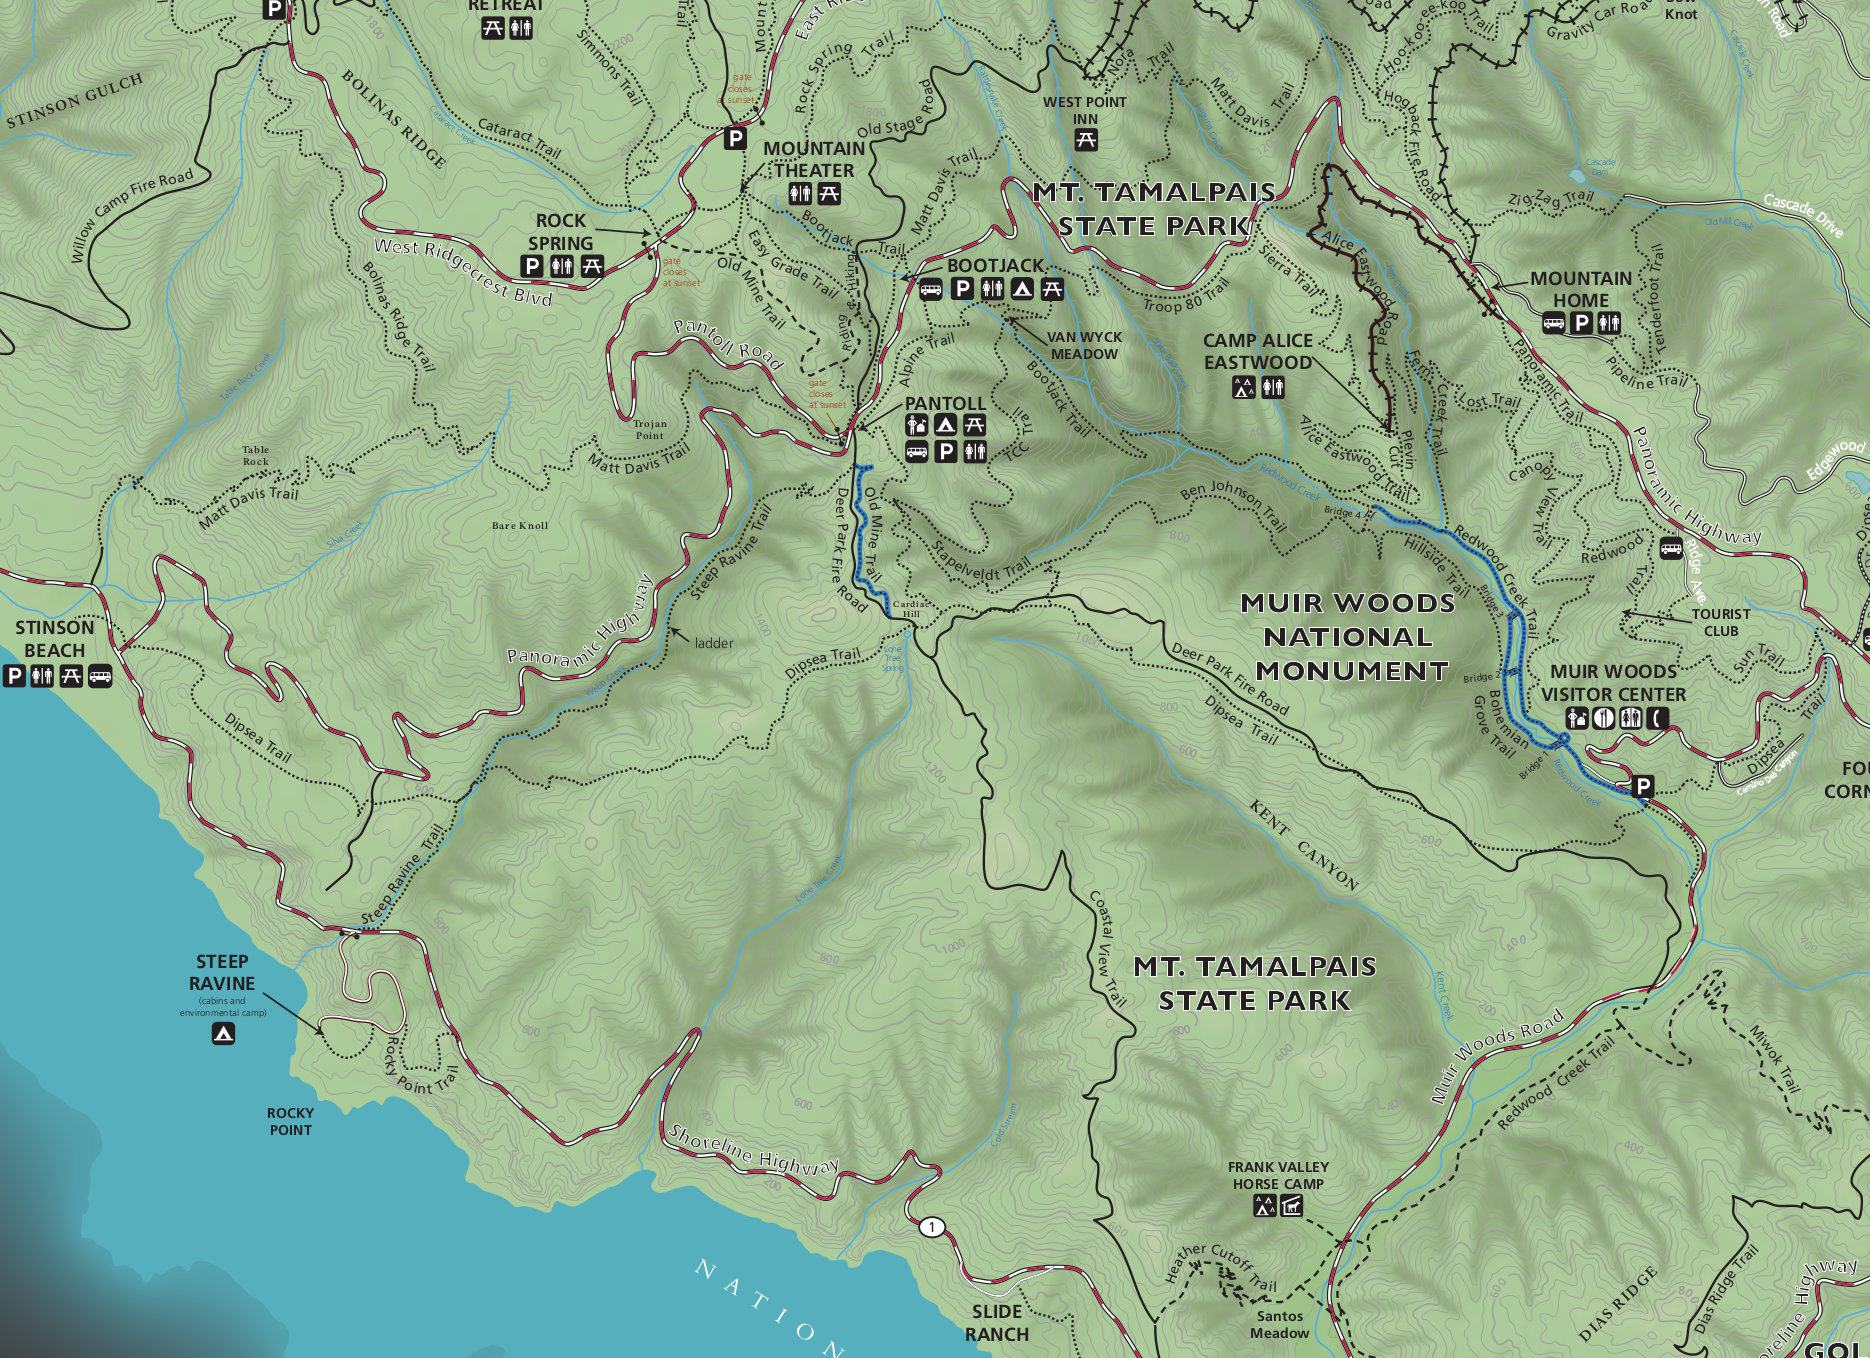 File:NPS muir-woods-trail-topographic-map jpg - Wikimedia Commons